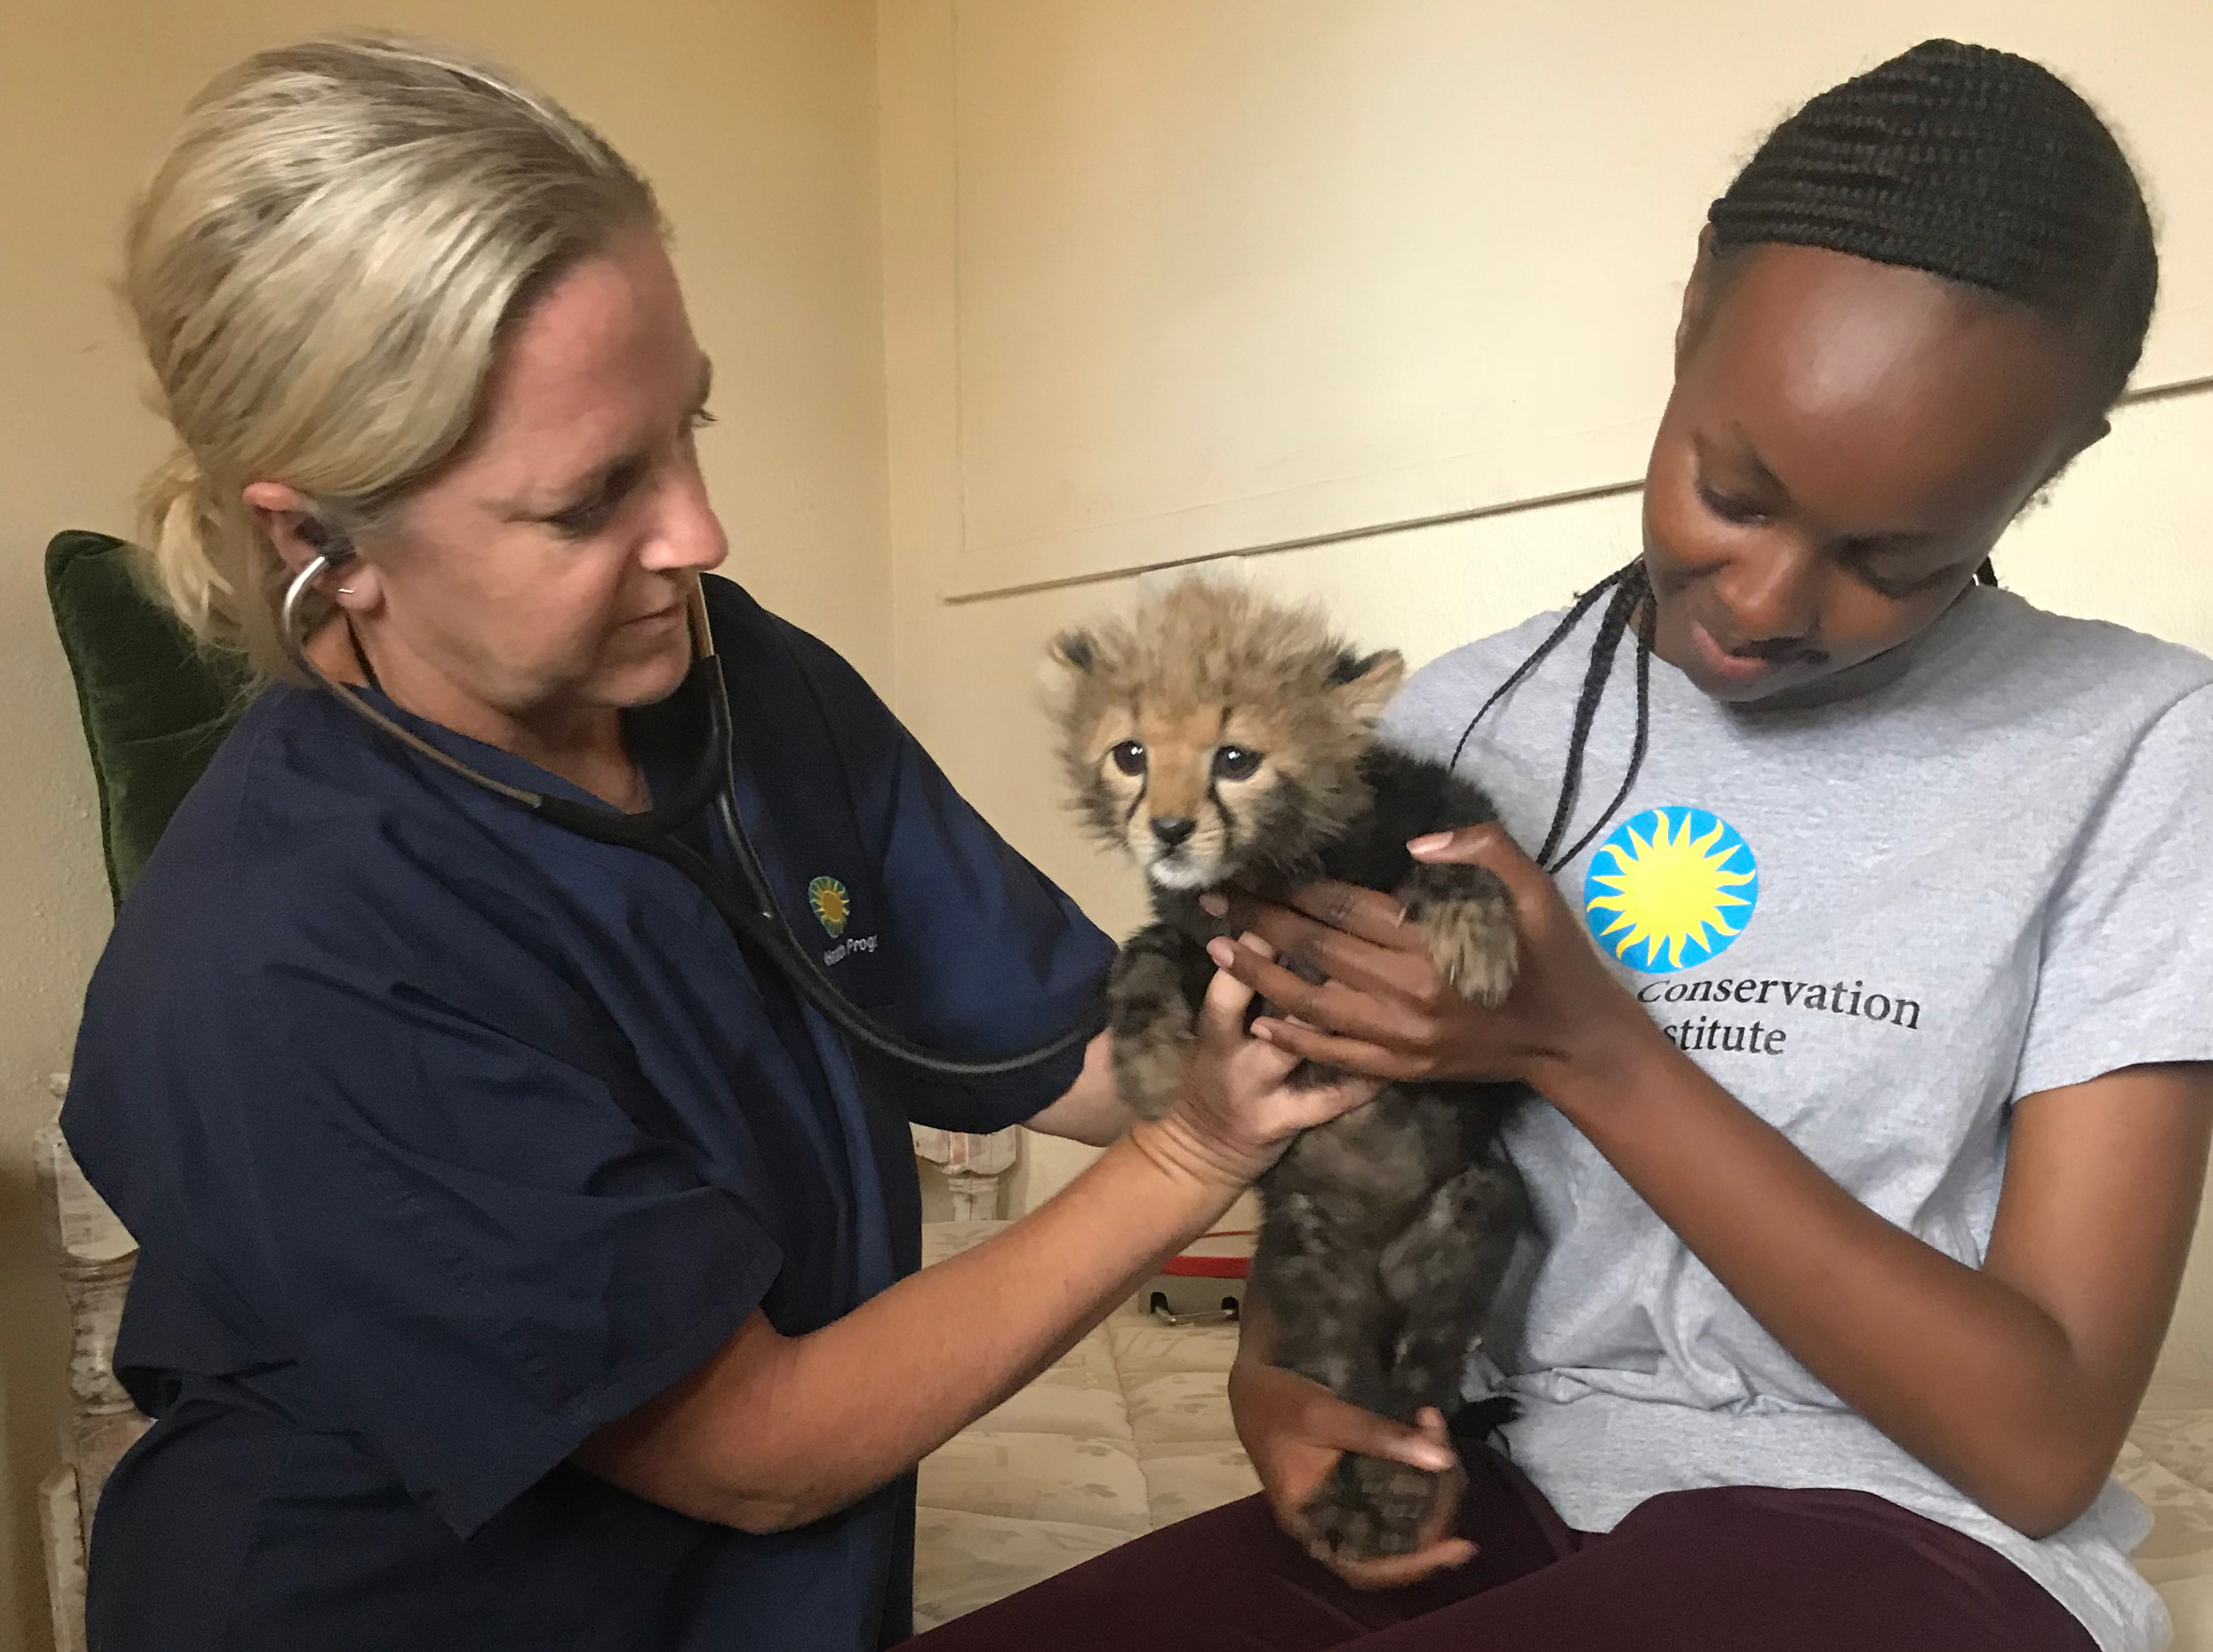 Two wildlife veterinarians with Global Health Program examine a cheetah cub in Kenya